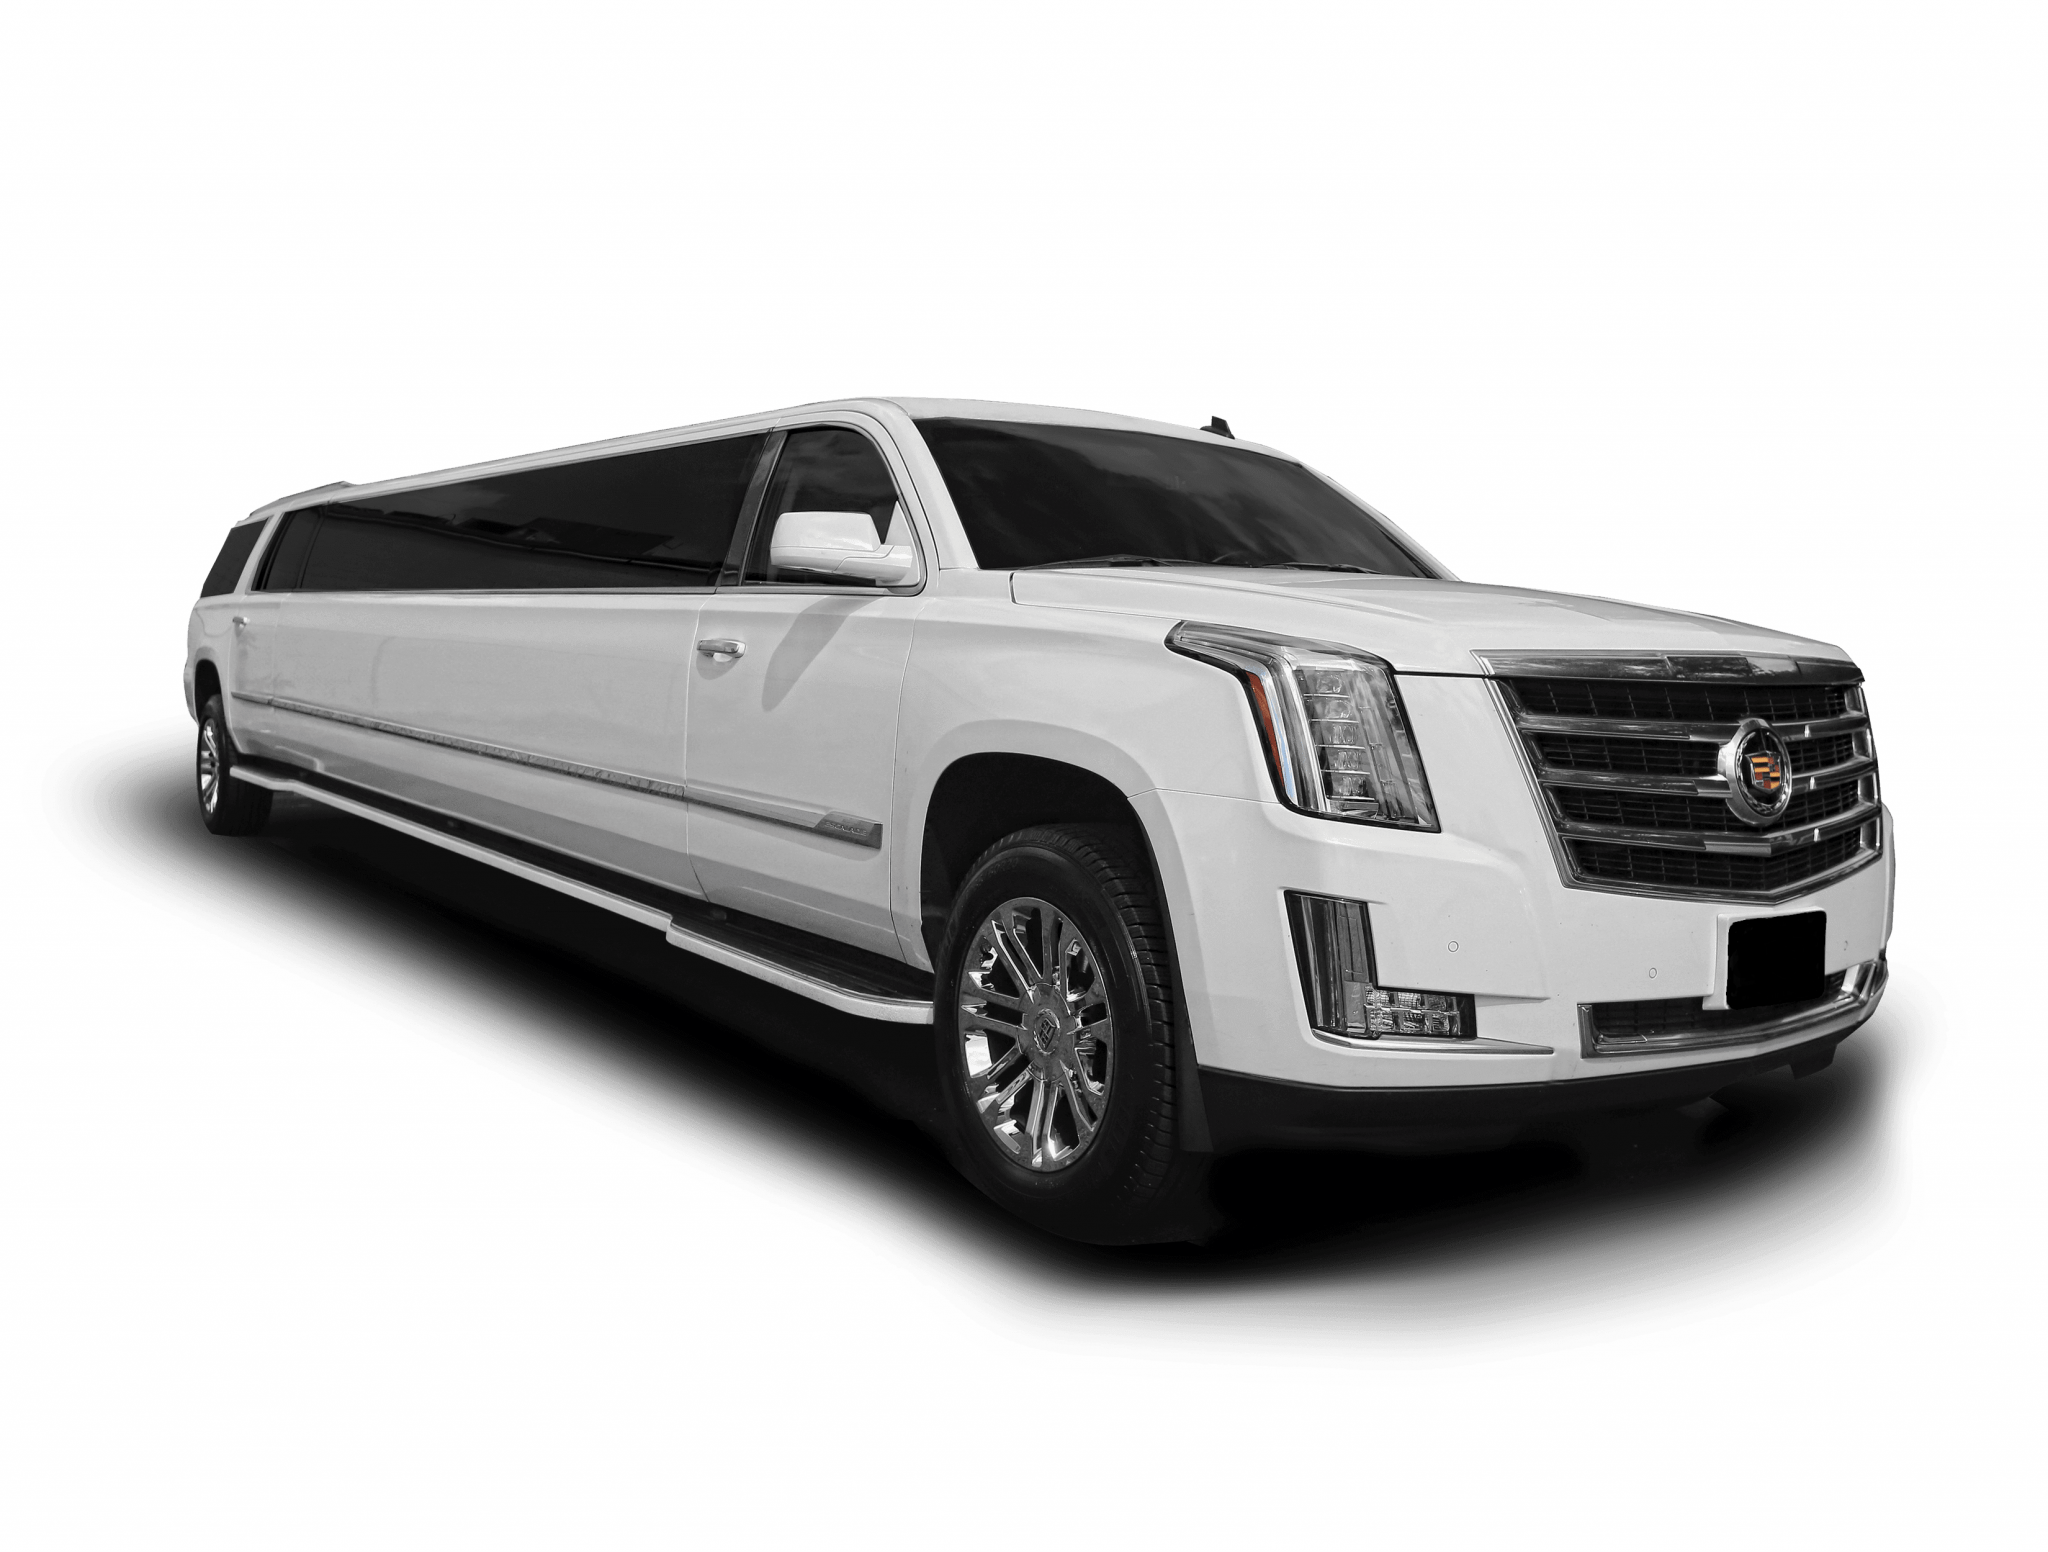 Houston Cadillac Escalade Limo Rental Services, Limousine, White Black Car Service, Black Car, Wedding, Round Trip, Anniversary, Nightlife, Getaway, Birthday, Brewery Tour, Wine Tasting, Funeral, Memorial, Bachelor, Bachelorette, City Tours, Events, Concerts, SUV